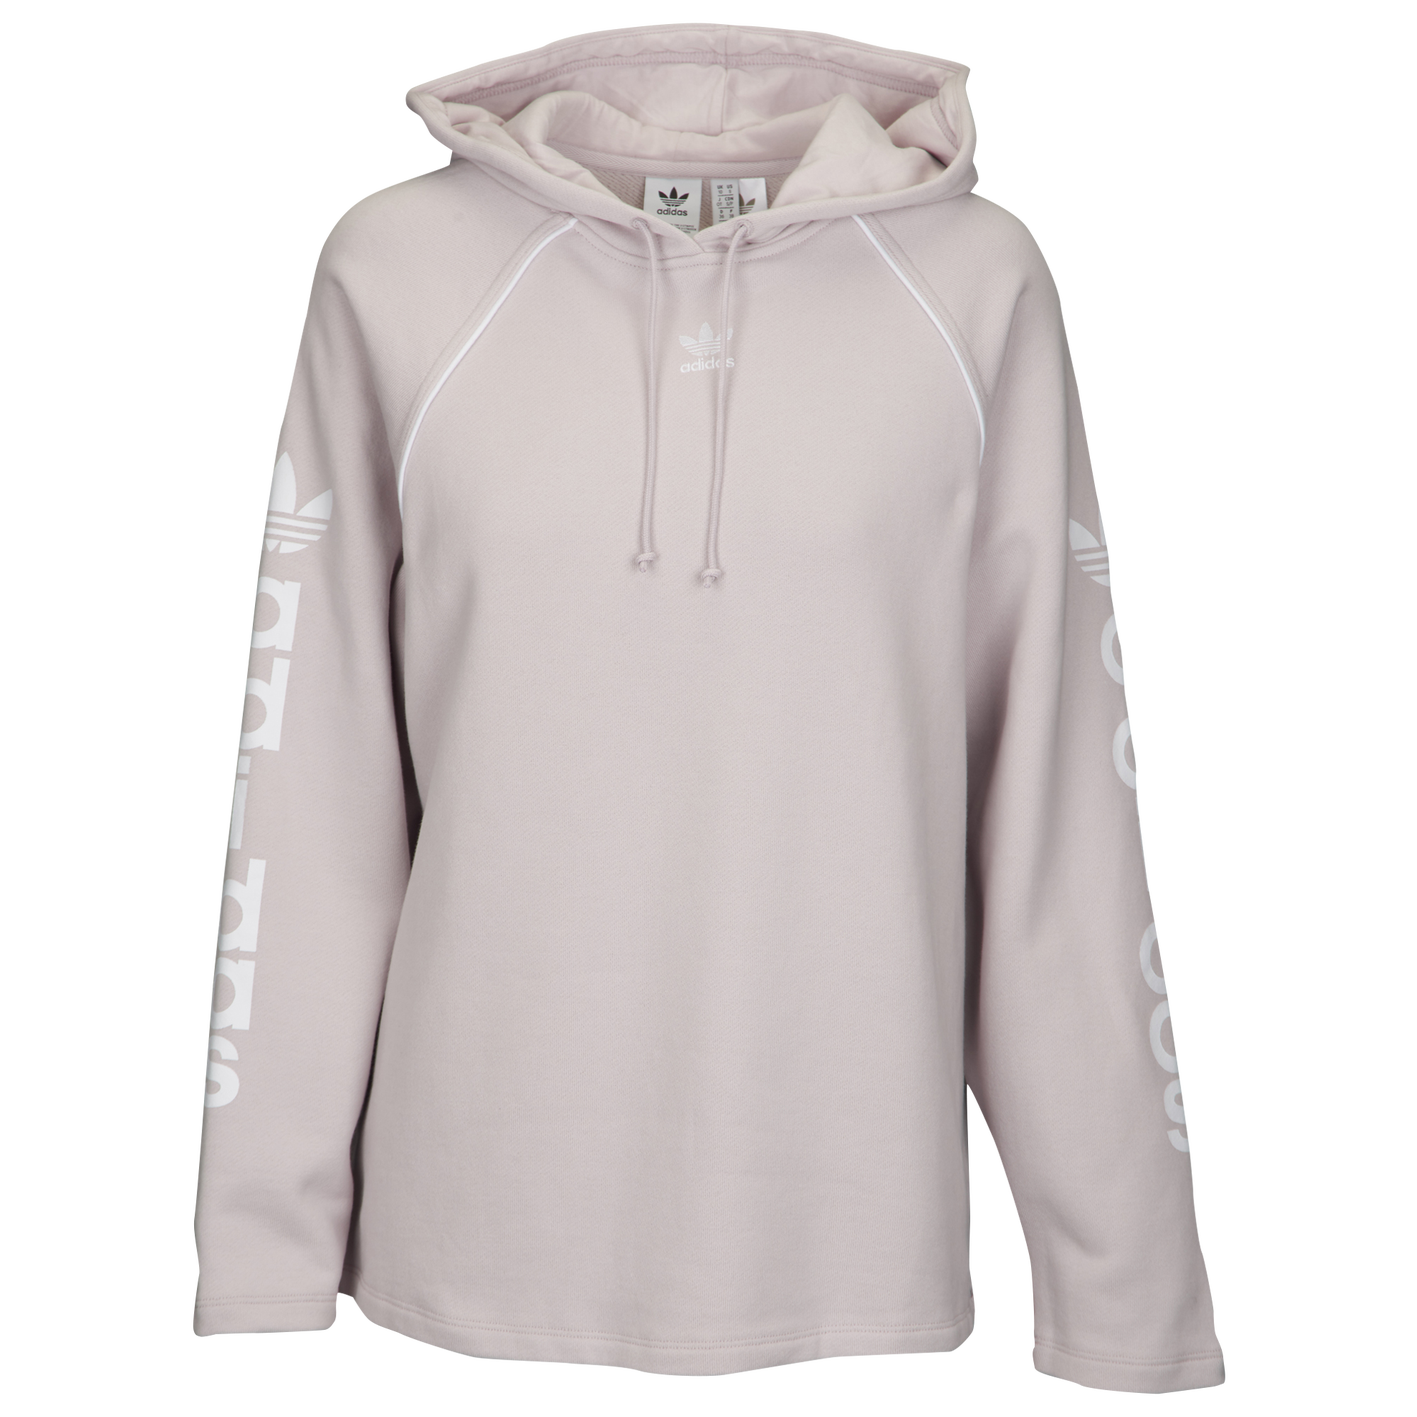 adidas Originals Winter Ease Hoodie - Women s - Casual - Clothing ... 41321be96